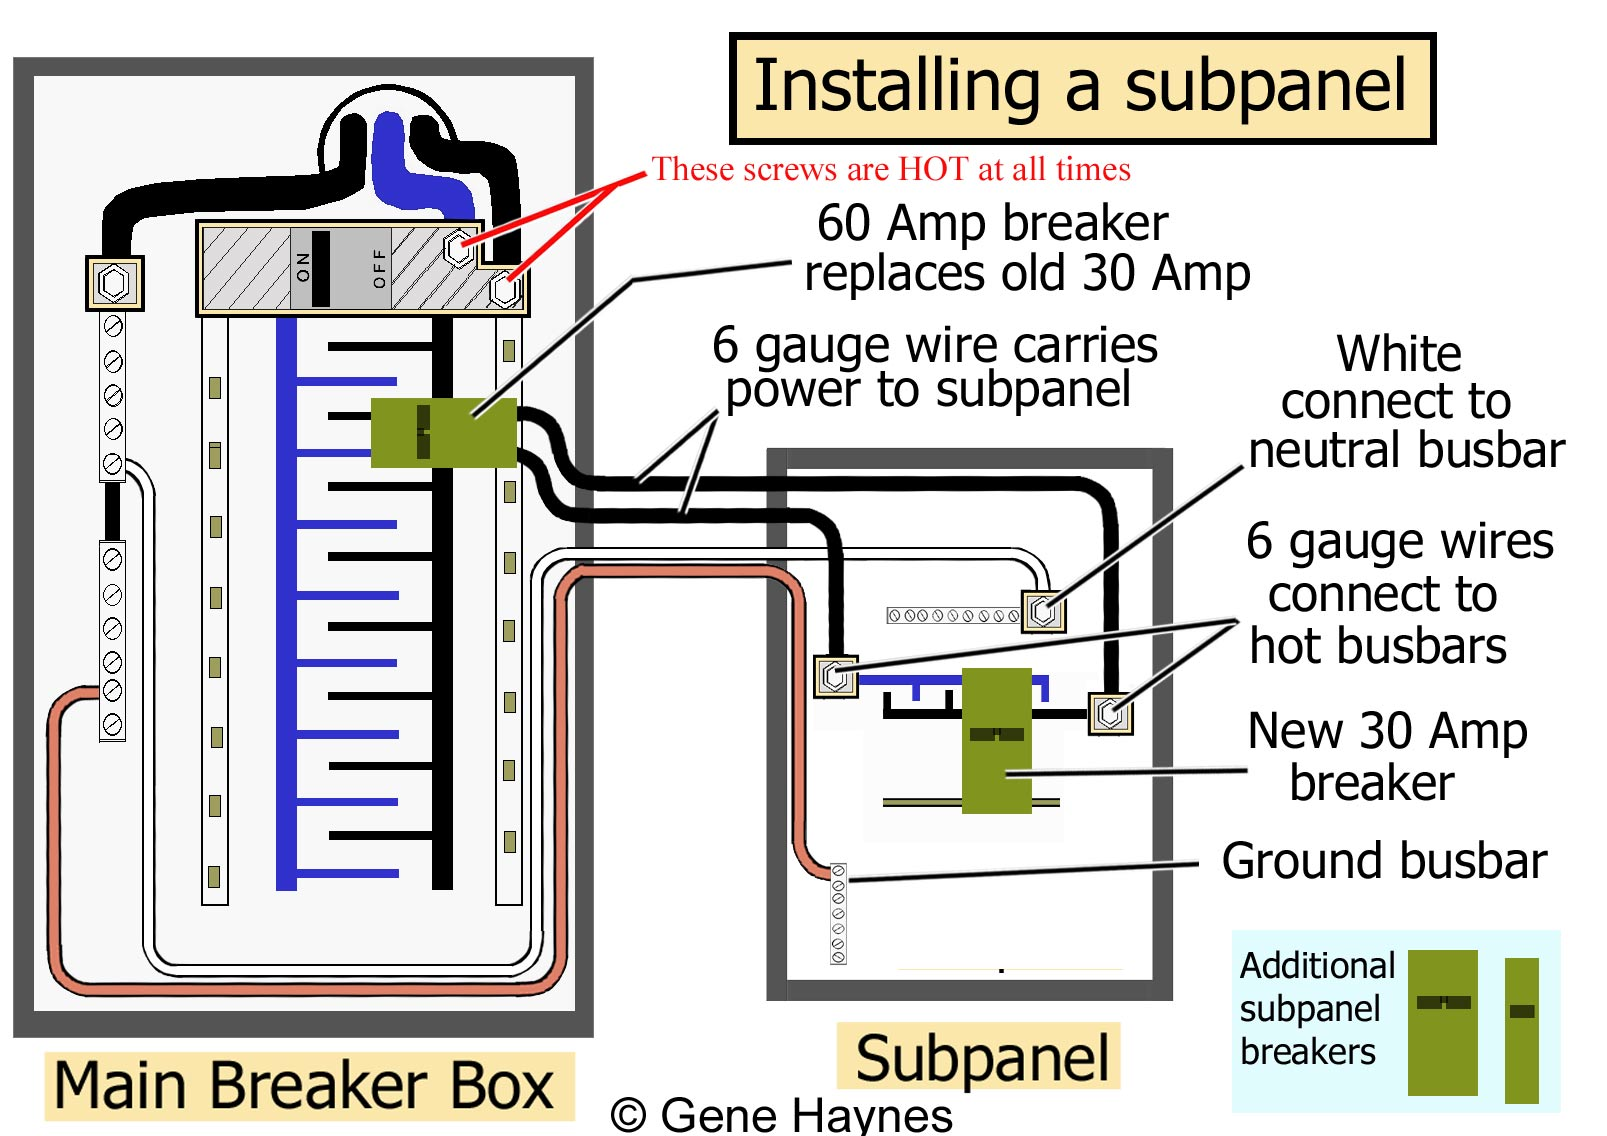 How To Install A Subpanel Main Lug Wiring Diagrams Which Are In The Installation Manual And Often Installing See Larger